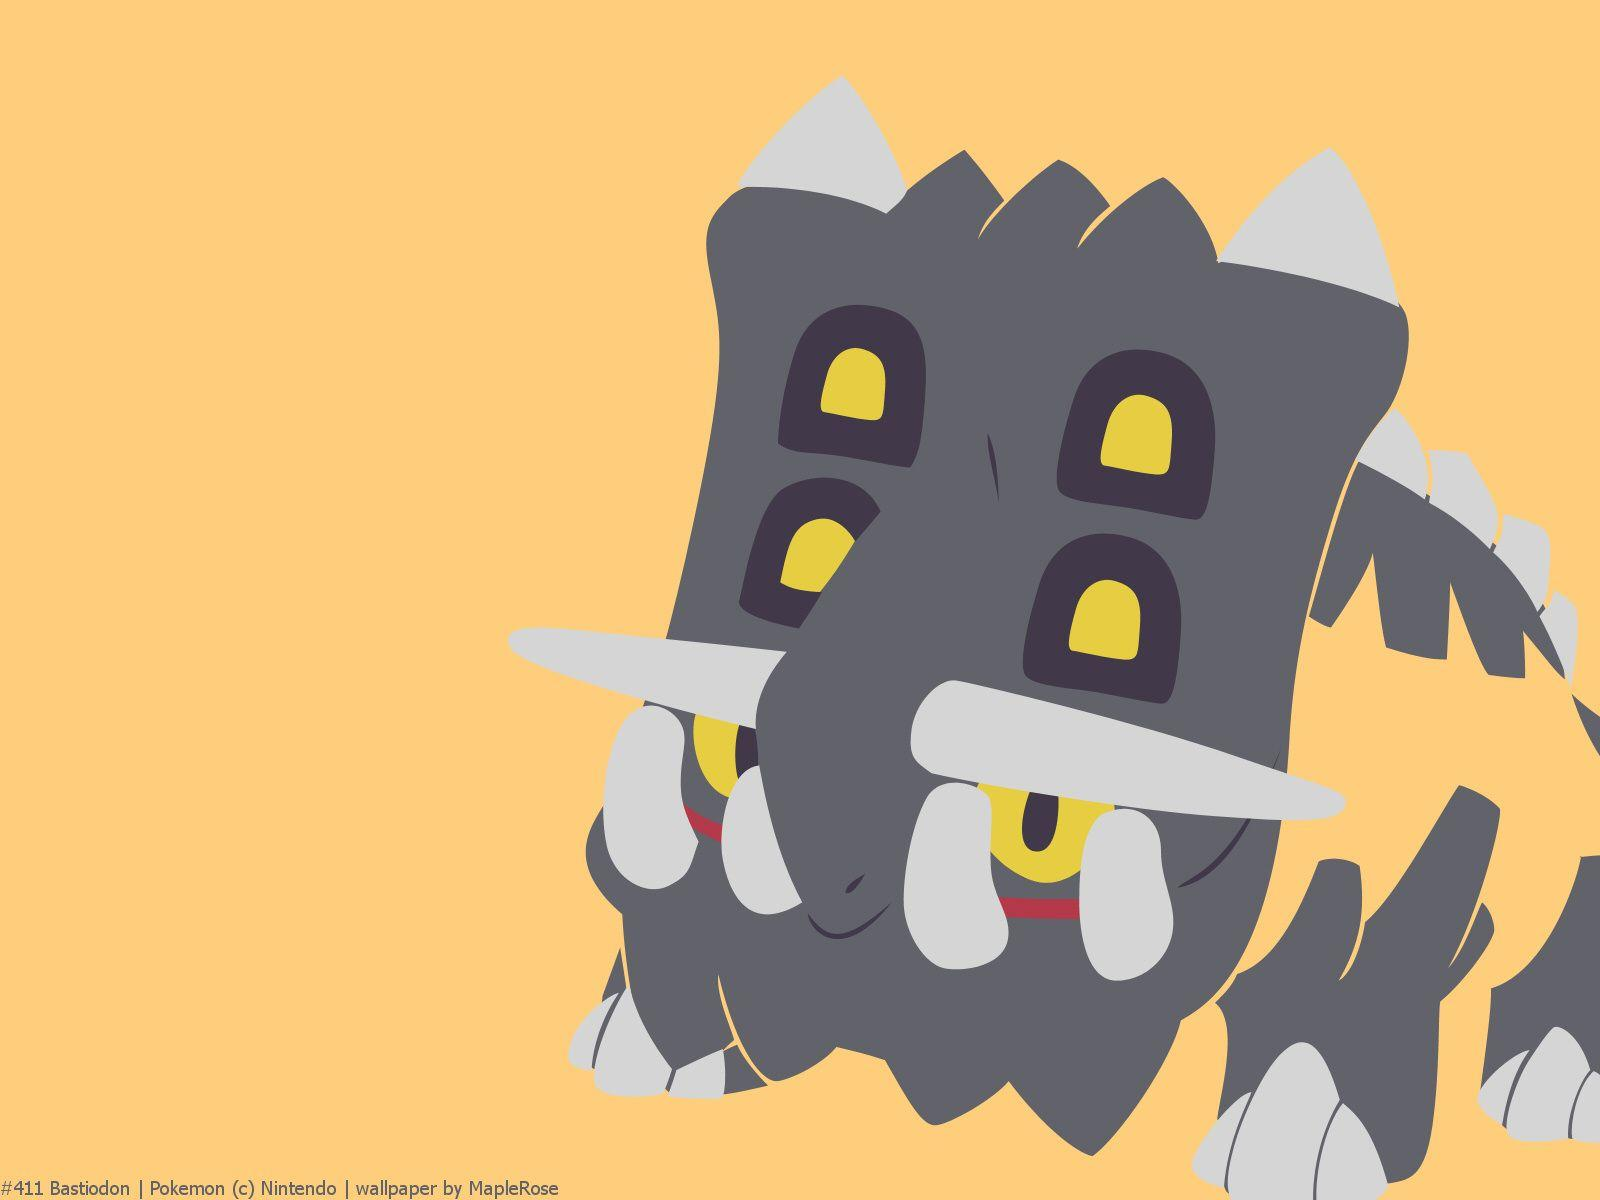 bastiodon #pokemon #anime #pocketmonsters | Pokémon | Pinterest ...